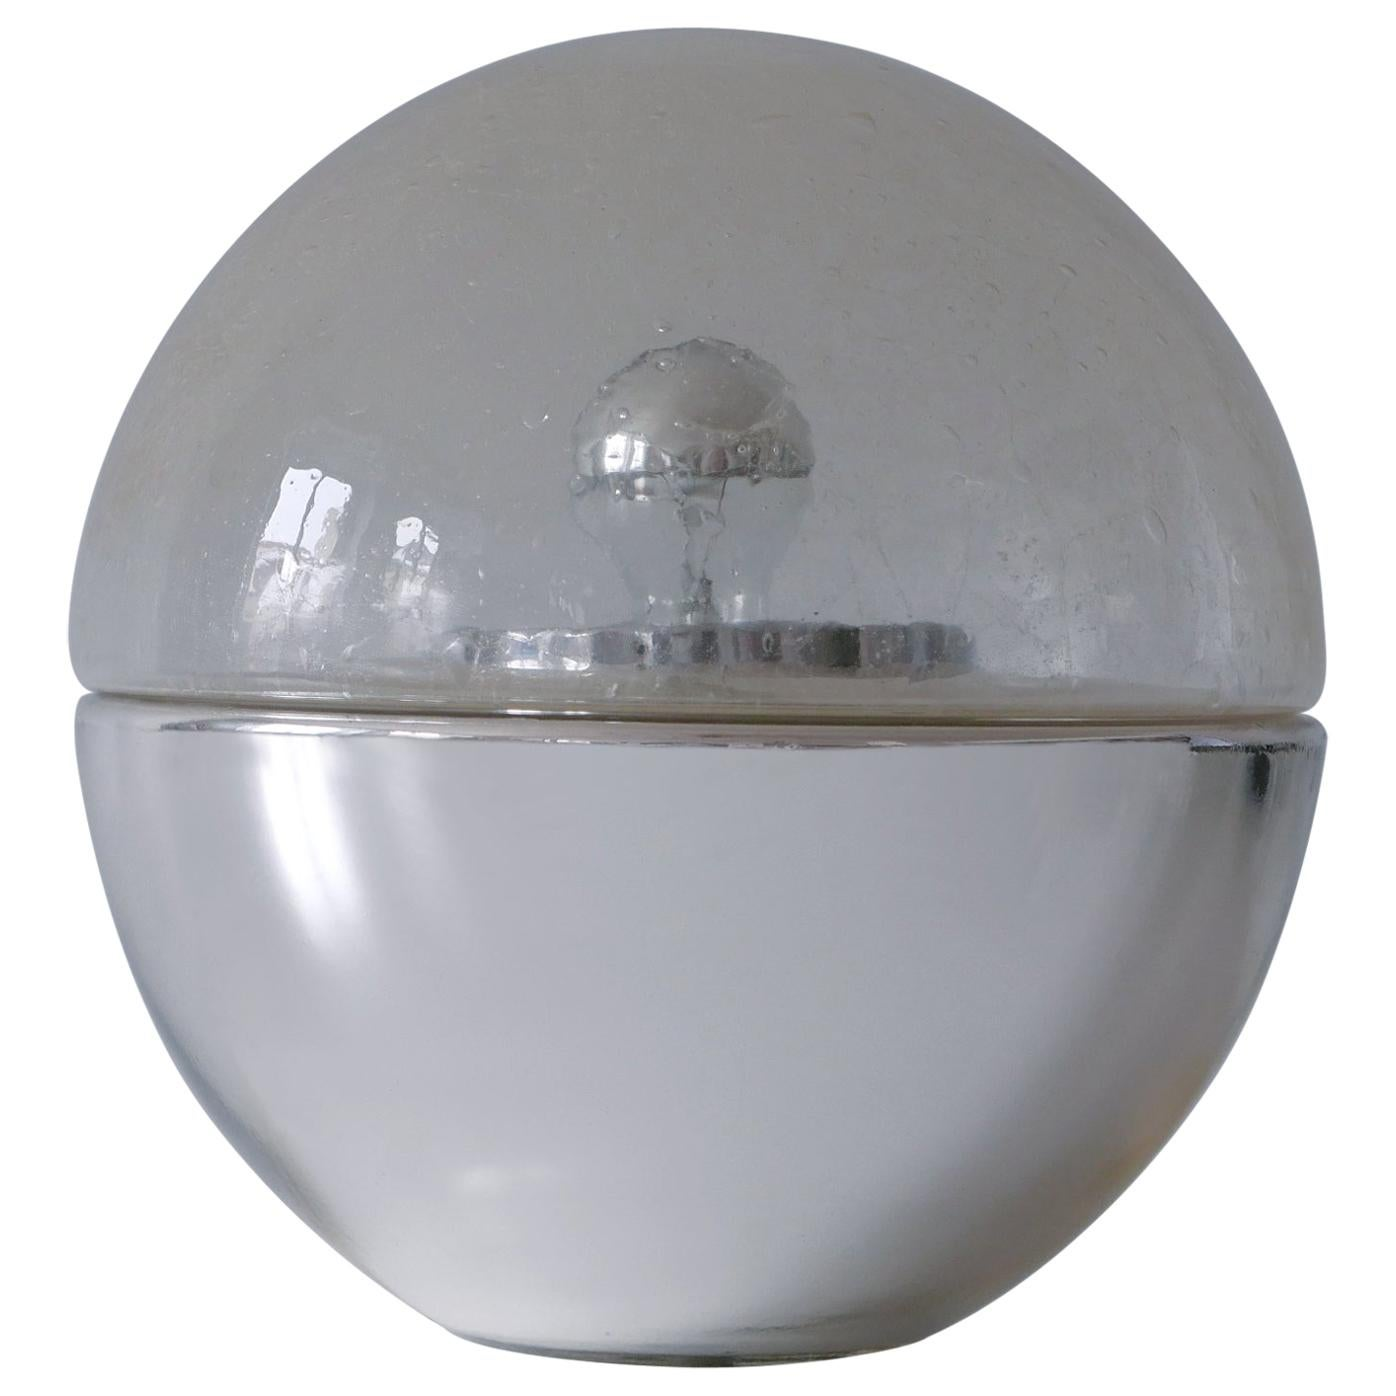 Exceptional Mid-Century Modern Textured Glass Globe Table or Floor Lamp, 1960s